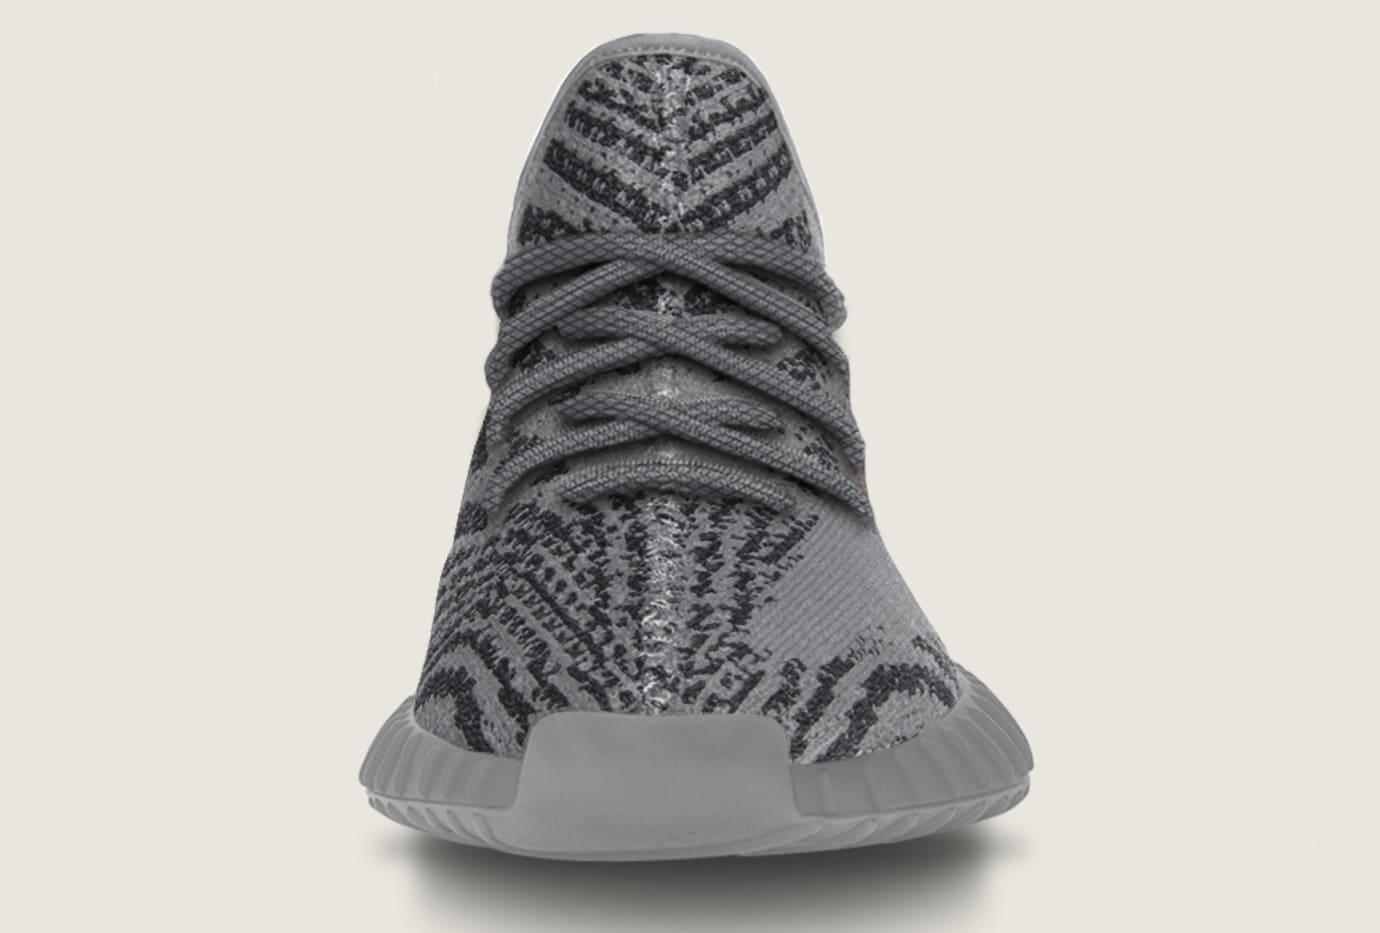 online store 630ce e6a4f Adidas Yeezy Boost 350 V2